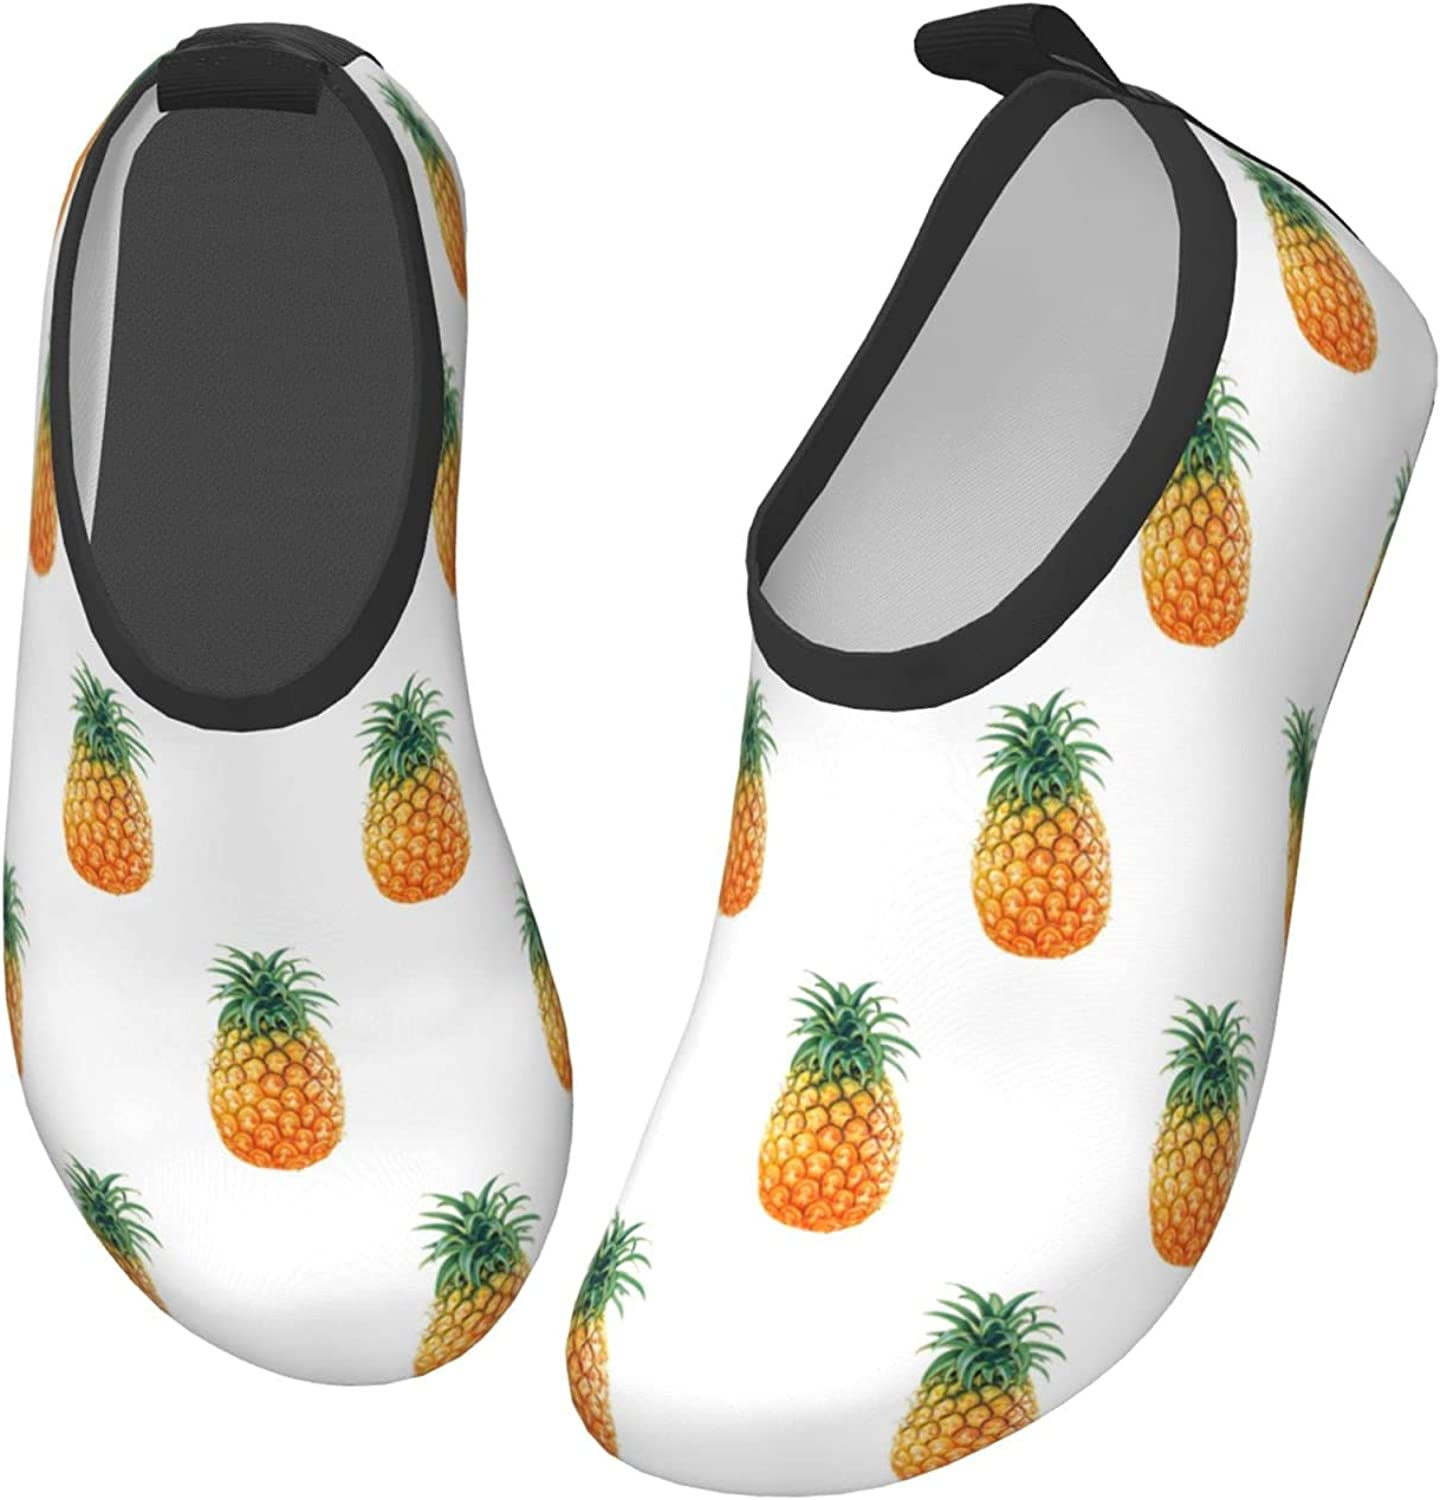 gkvuwhi Pineapple Pattern Non-Slip Kids Water Sports Shoes, Quick-Dry Cute Aqua Socks for Boys Girls Toddler, Outdoor Barefoot Beach Shoes for Swim Walking, Lightweight Surfing Shoes